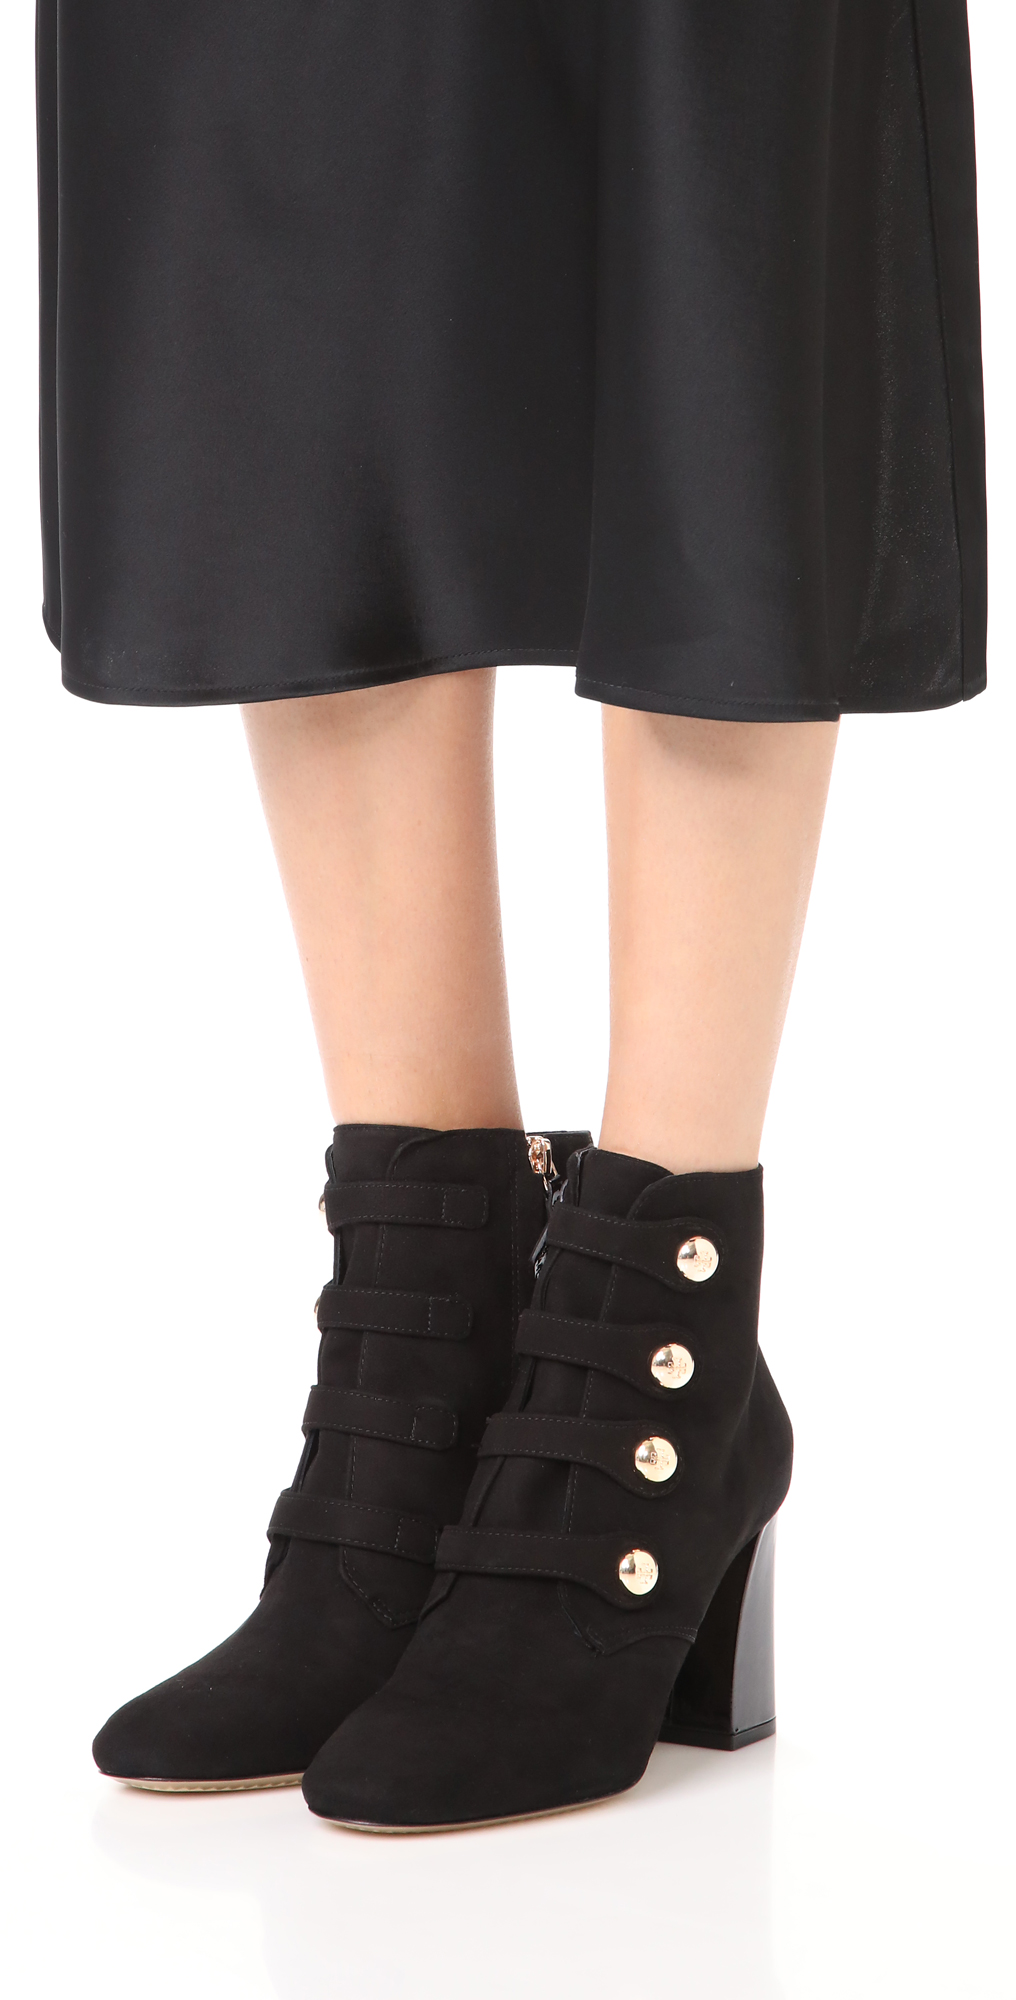 e2d91b424 Tory Burch Marisa 85mm Strappy Booties